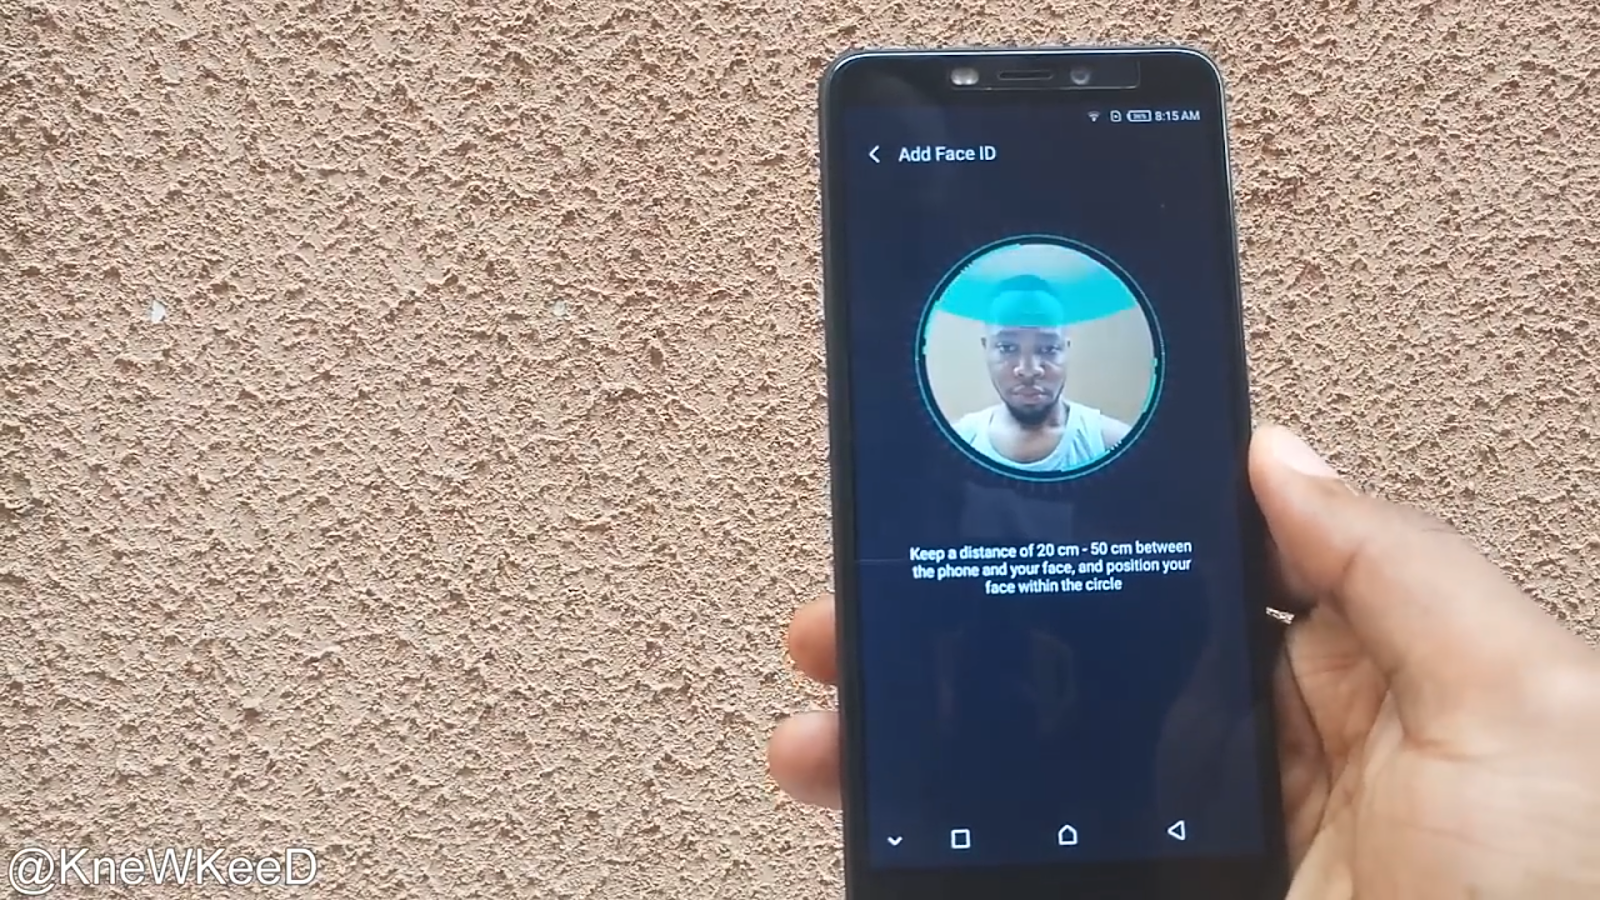 Setting up face id for the first time on the Infinix Hot S3 smart phone